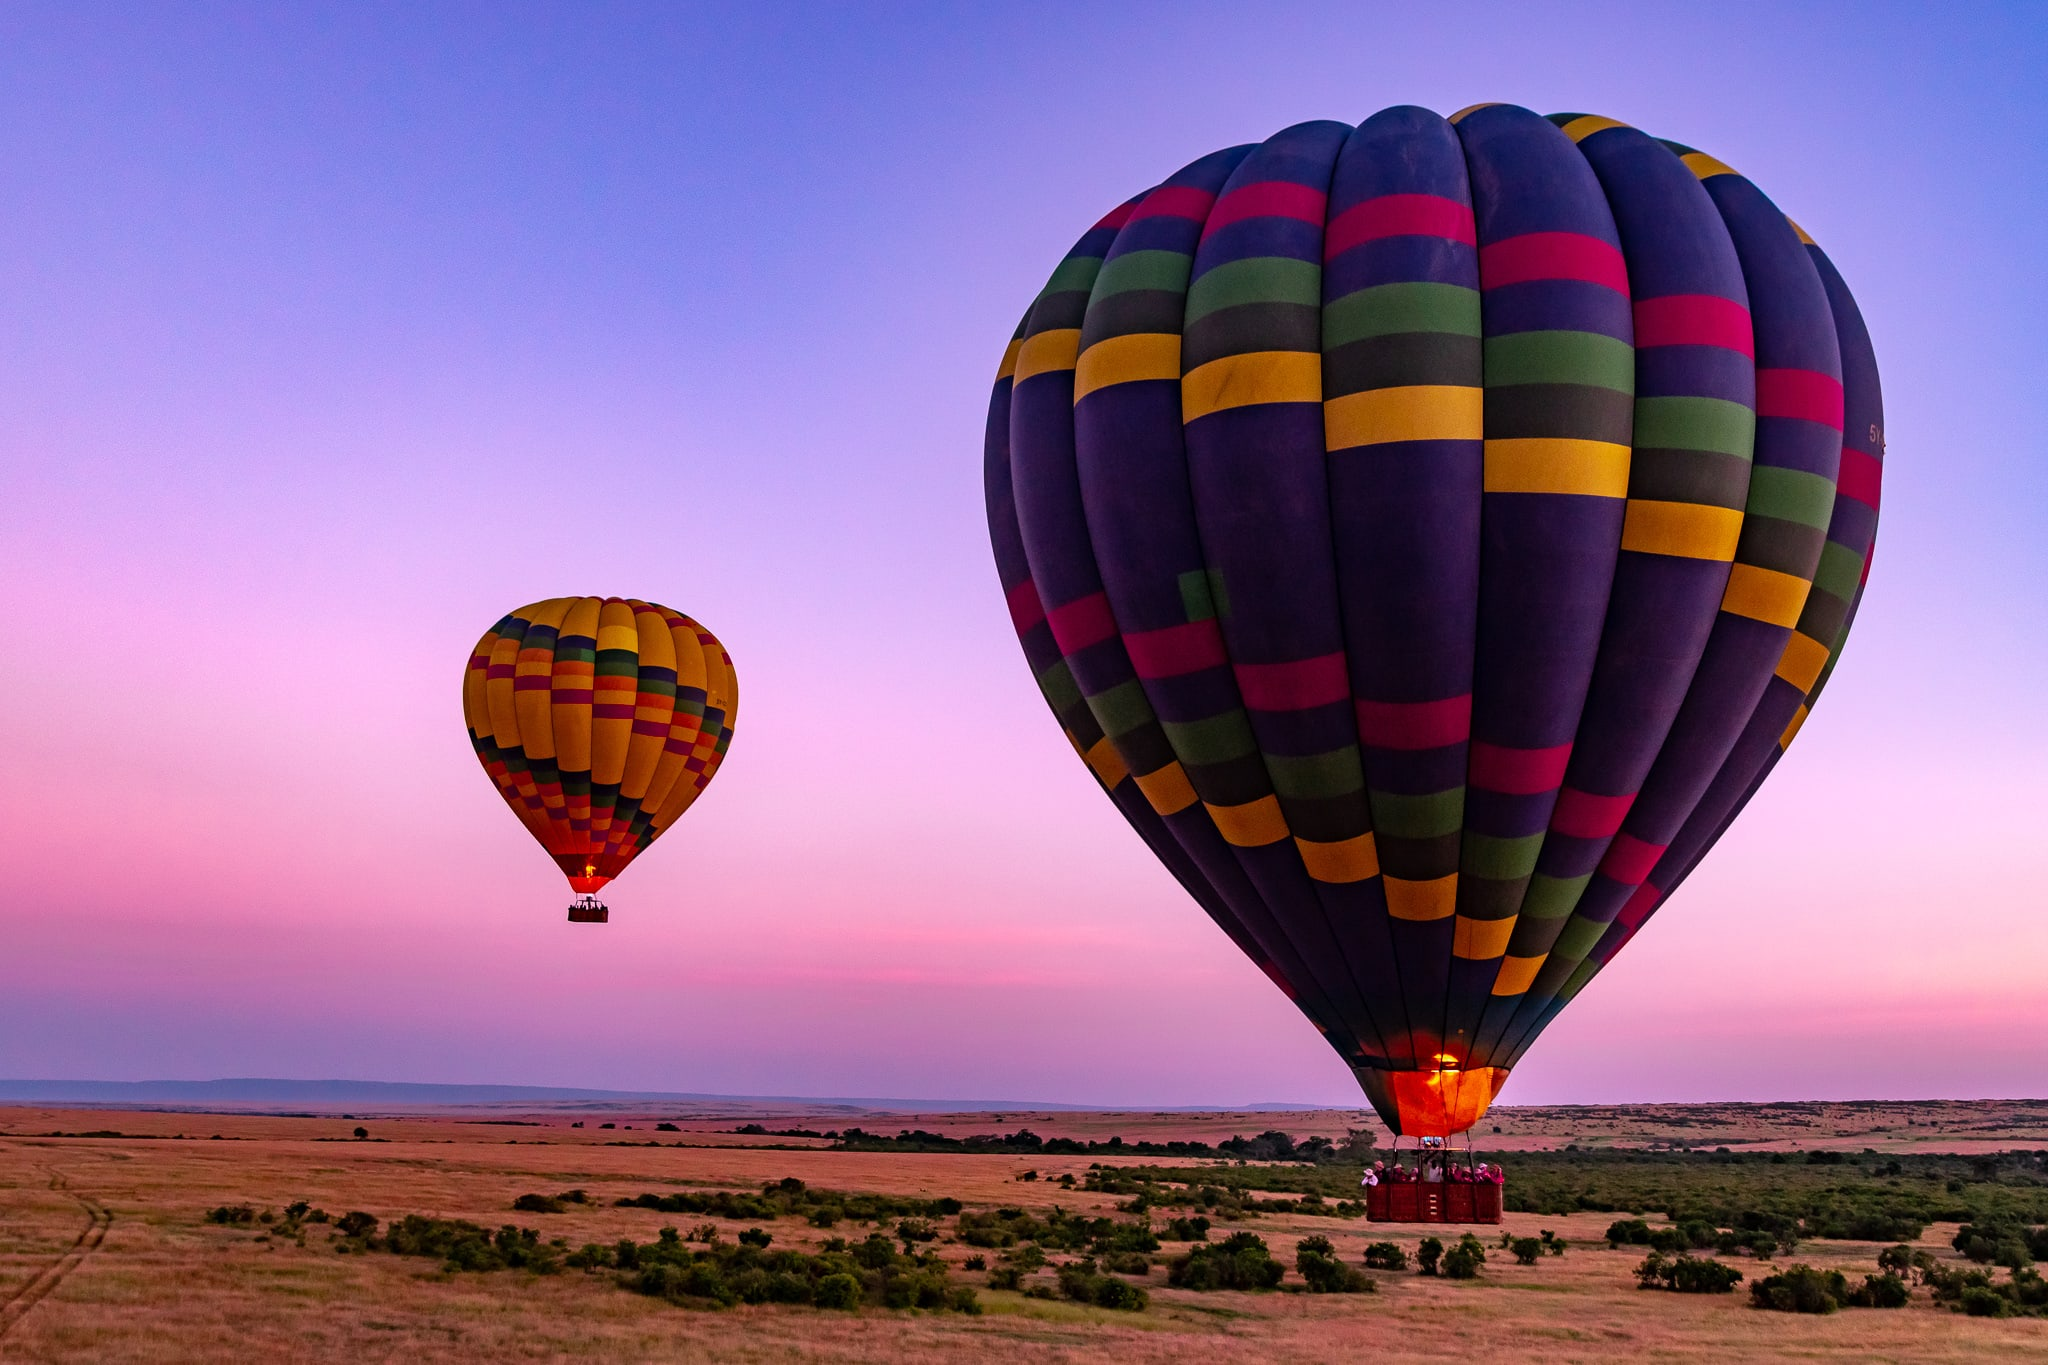 Sunrise balloon ride over the Maasai Mara